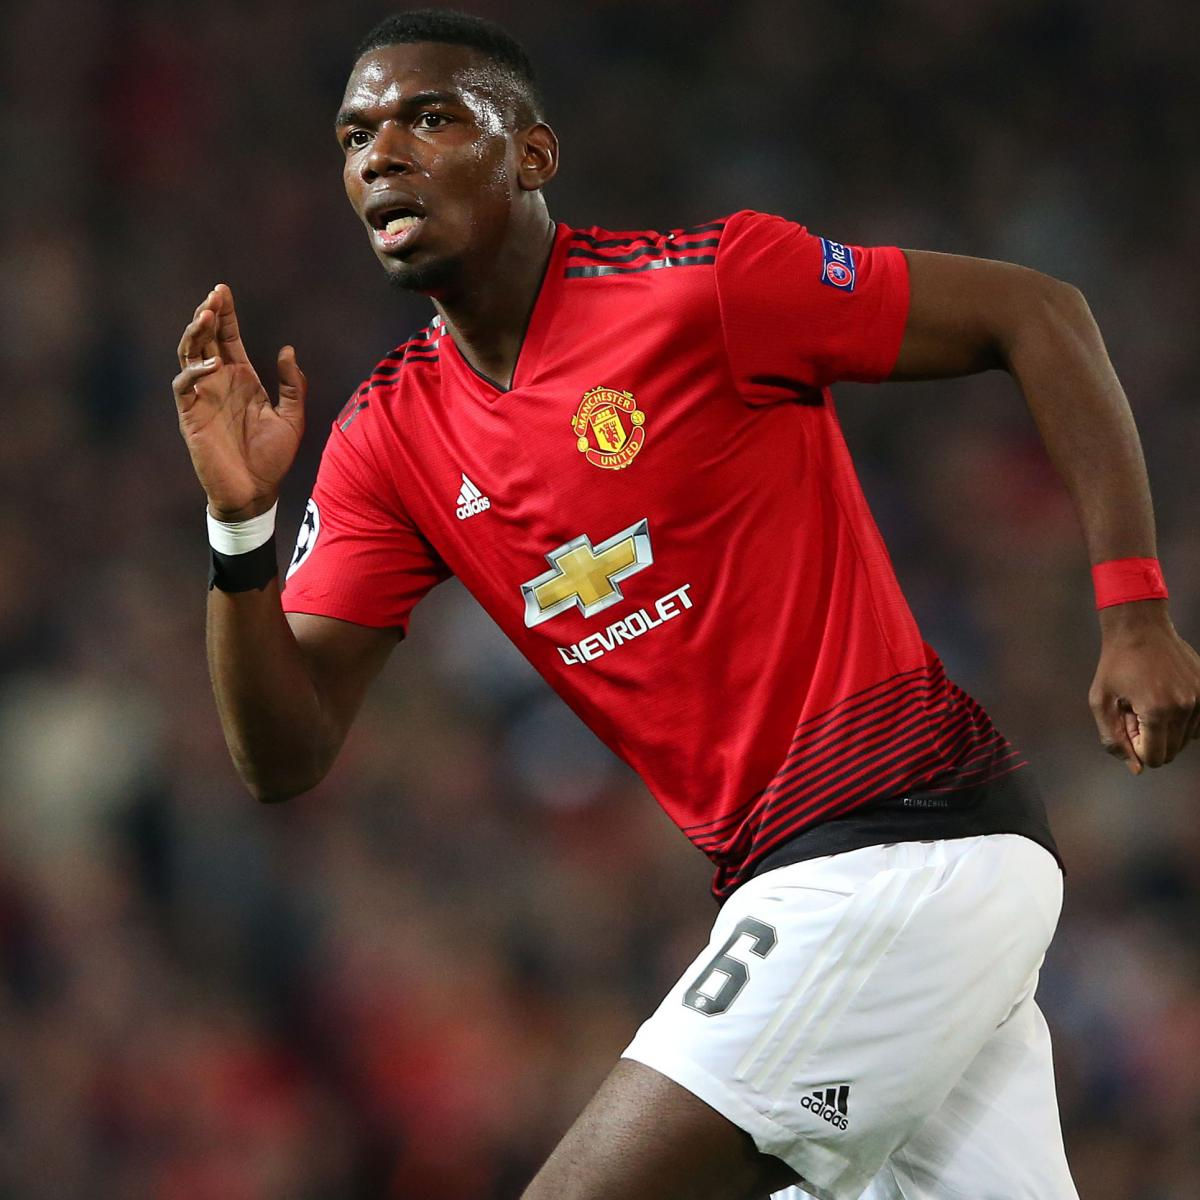 Manchester United Vs. West Ham: Odds, Preview, Live Stream